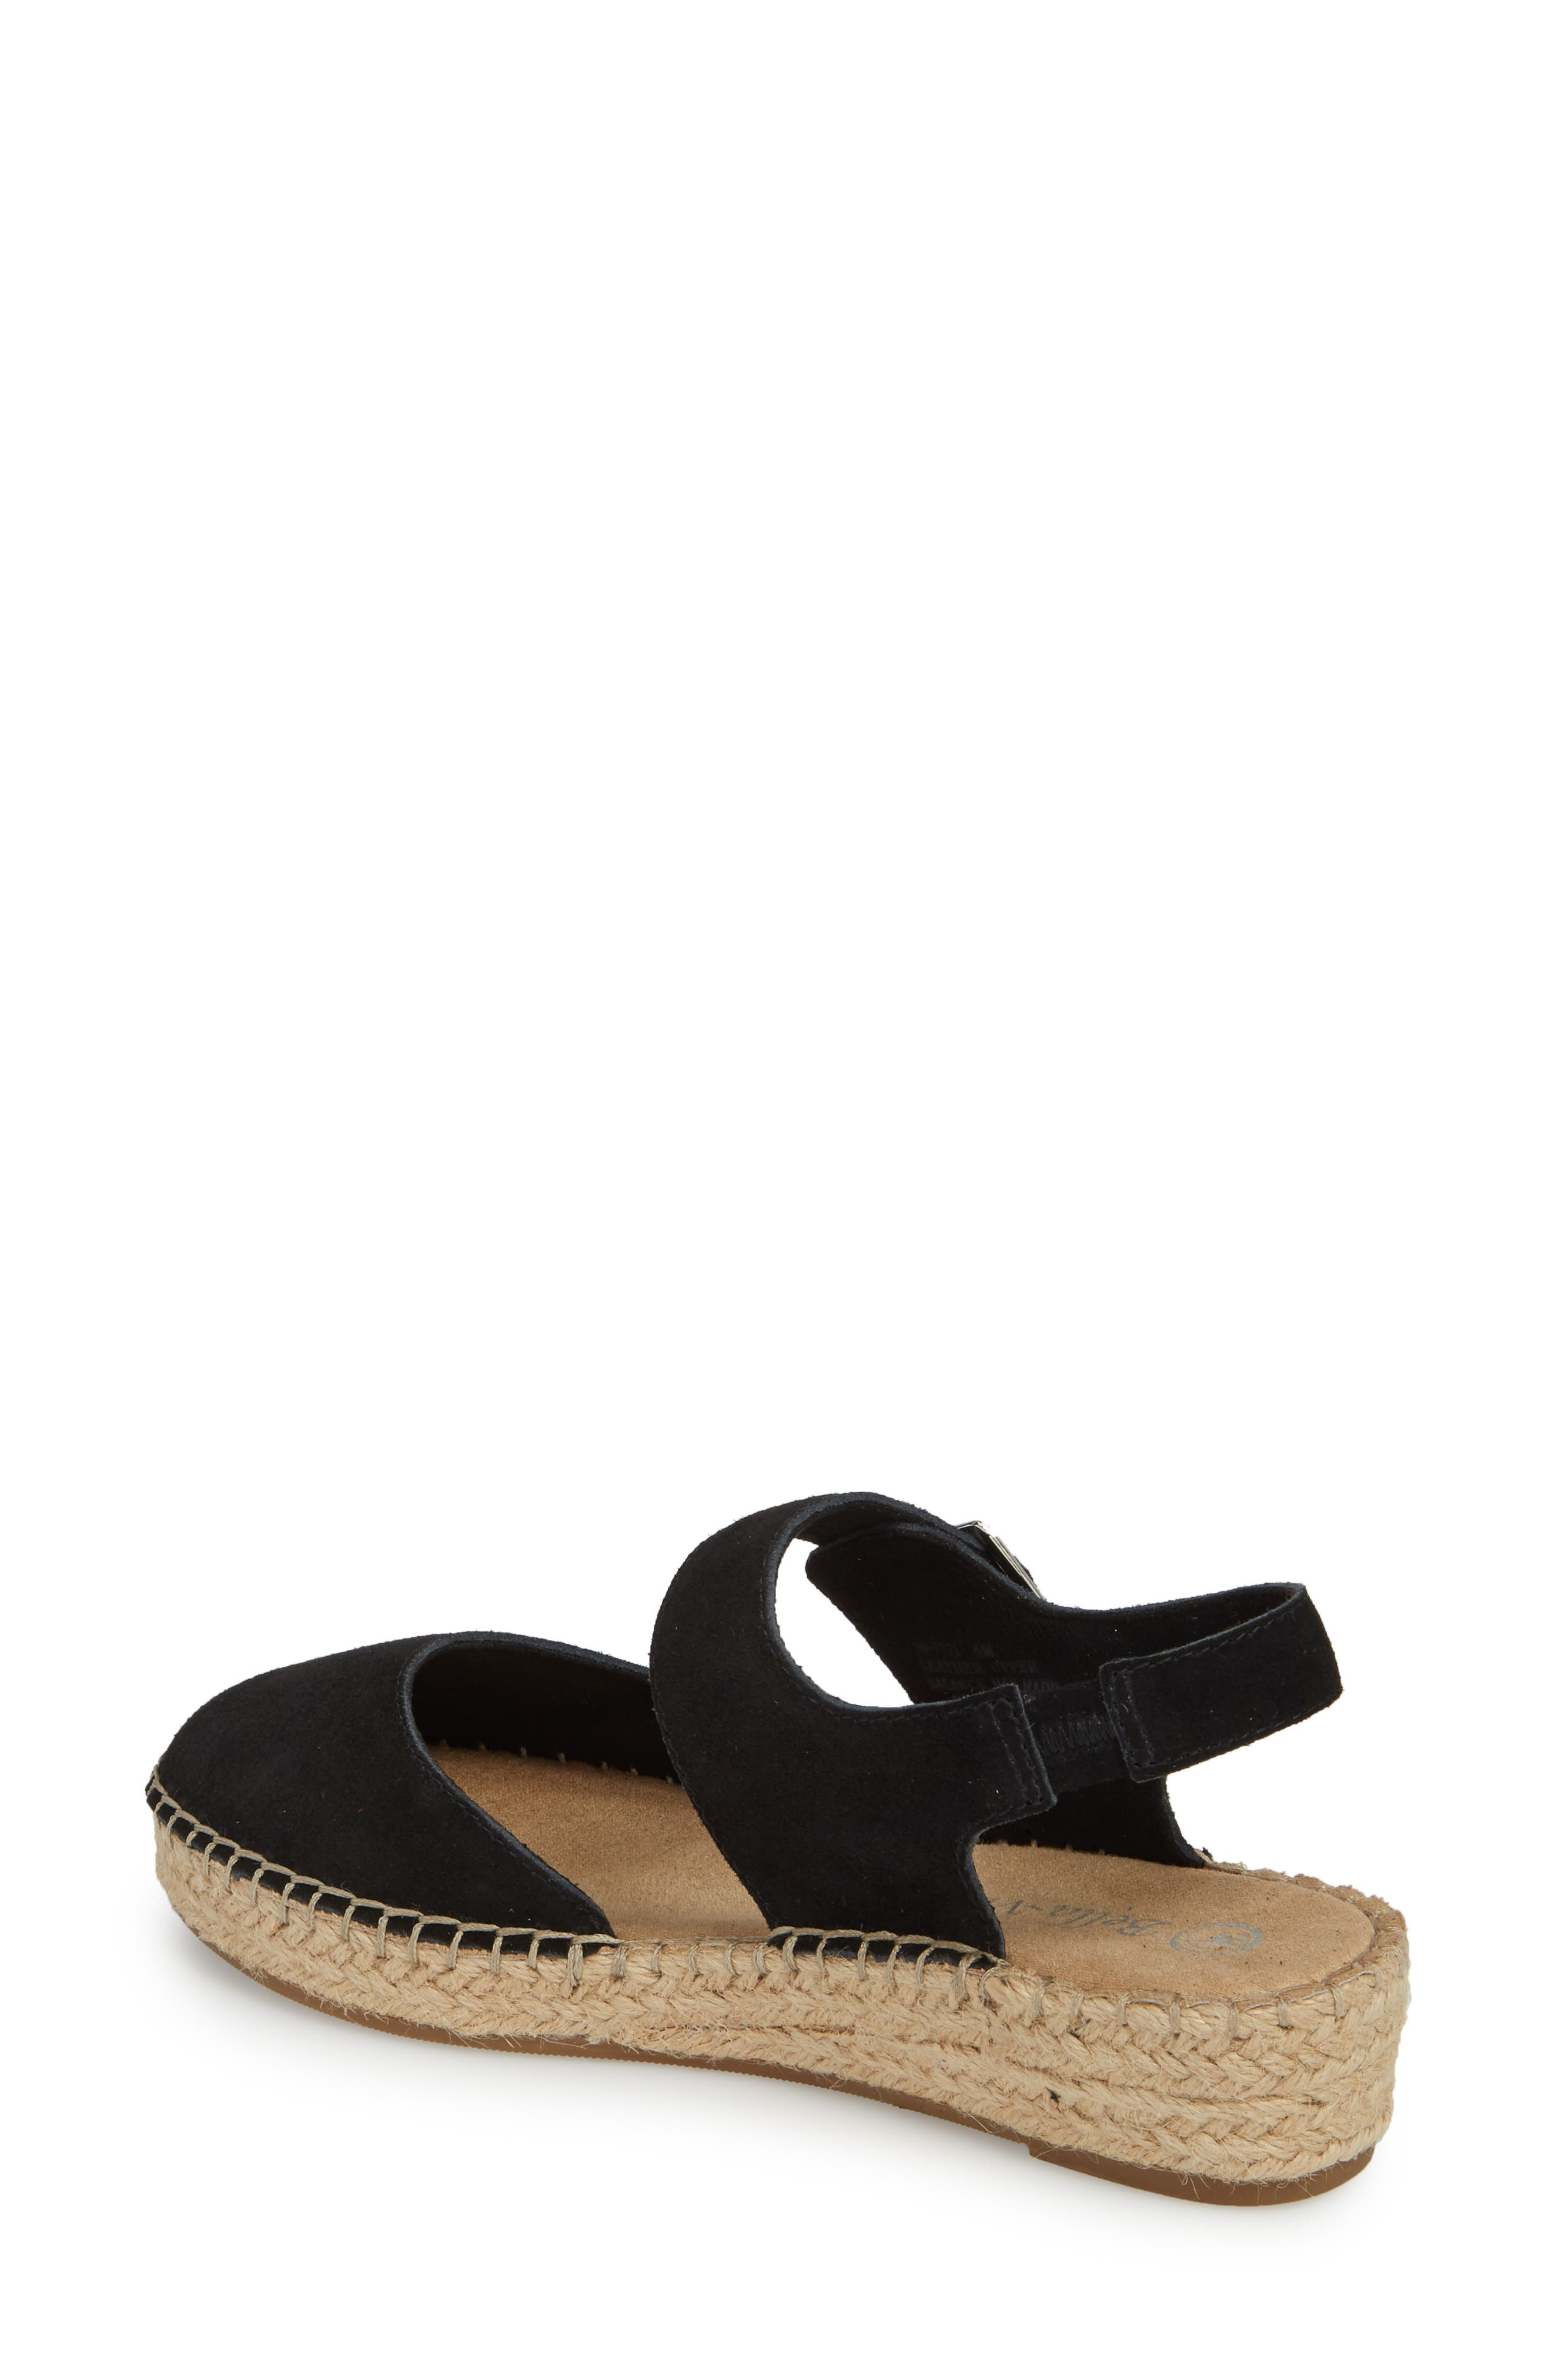 BELLA VITA,                             Caralynn Espadrille Sandal,                             Alternate thumbnail 2, color,                             018